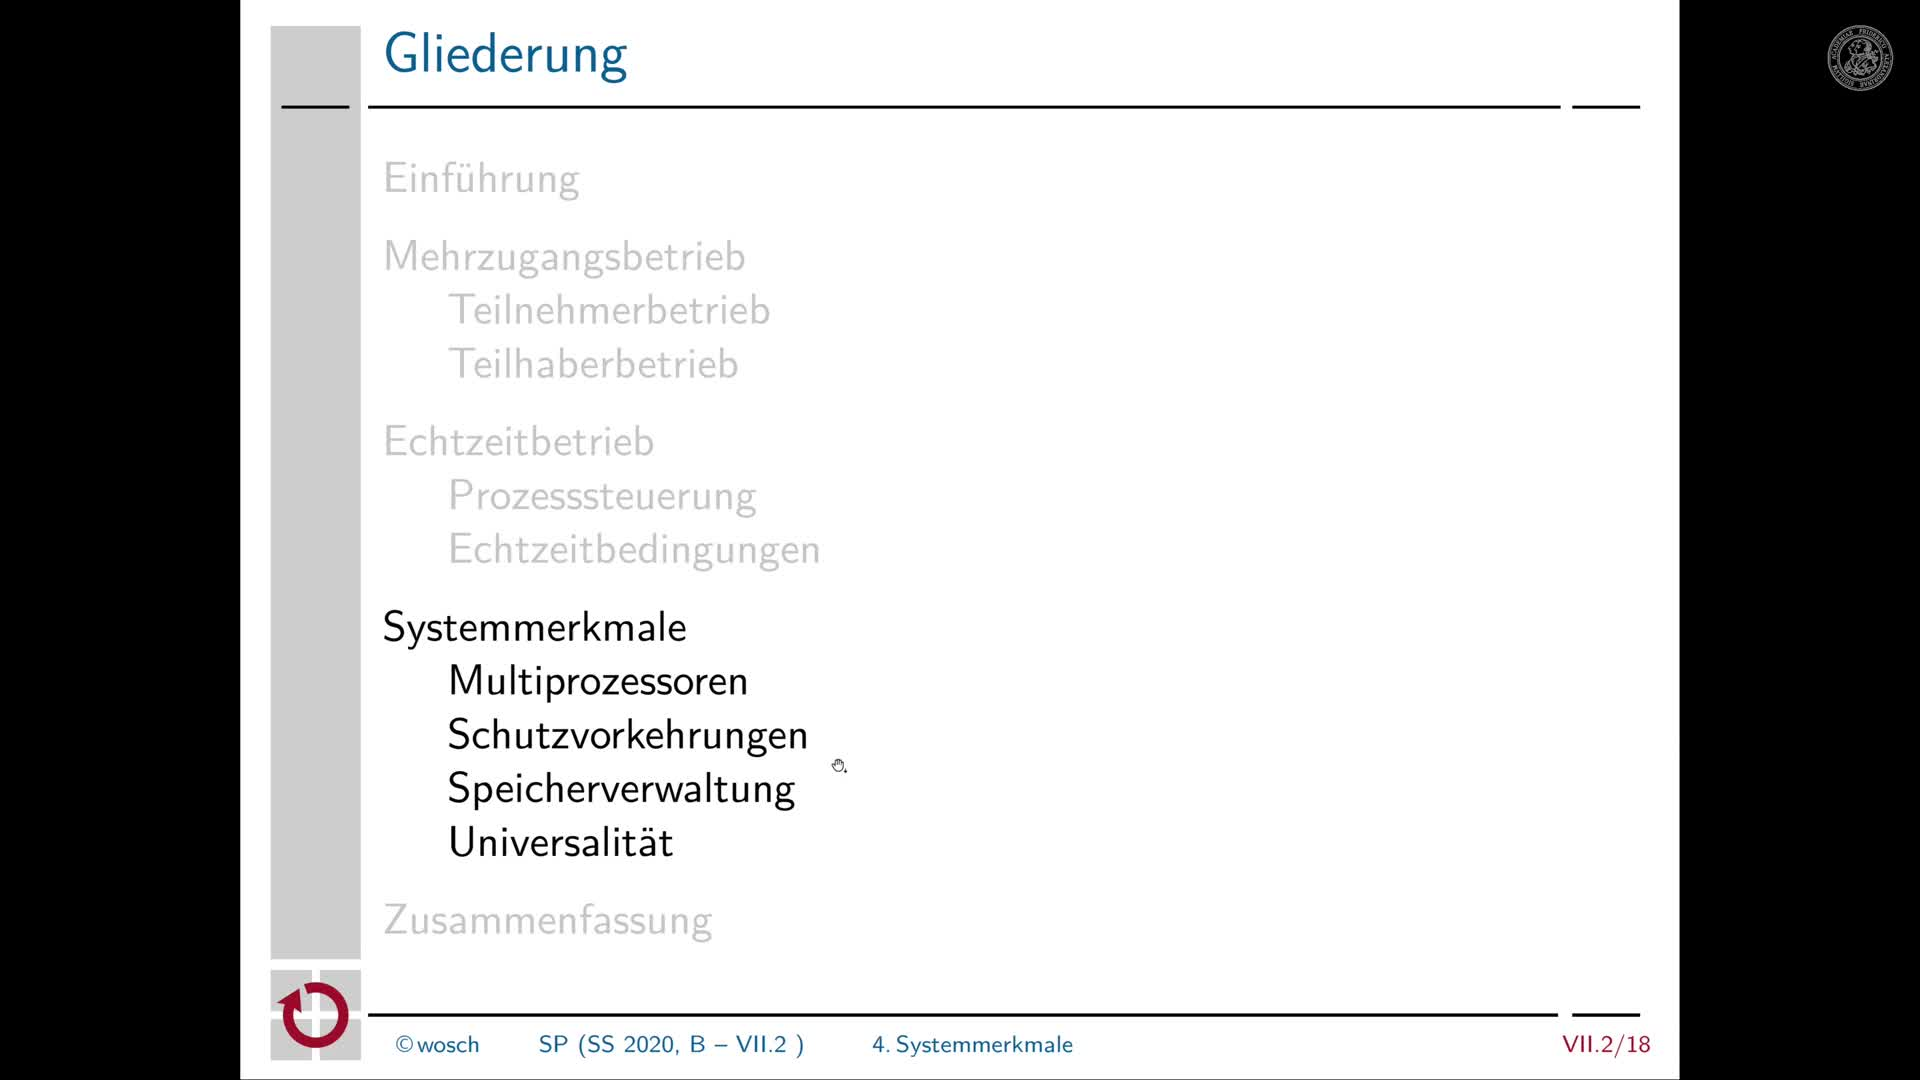 7.2.5 Dialogverarbeitung: Multiprozessorsysteme preview image